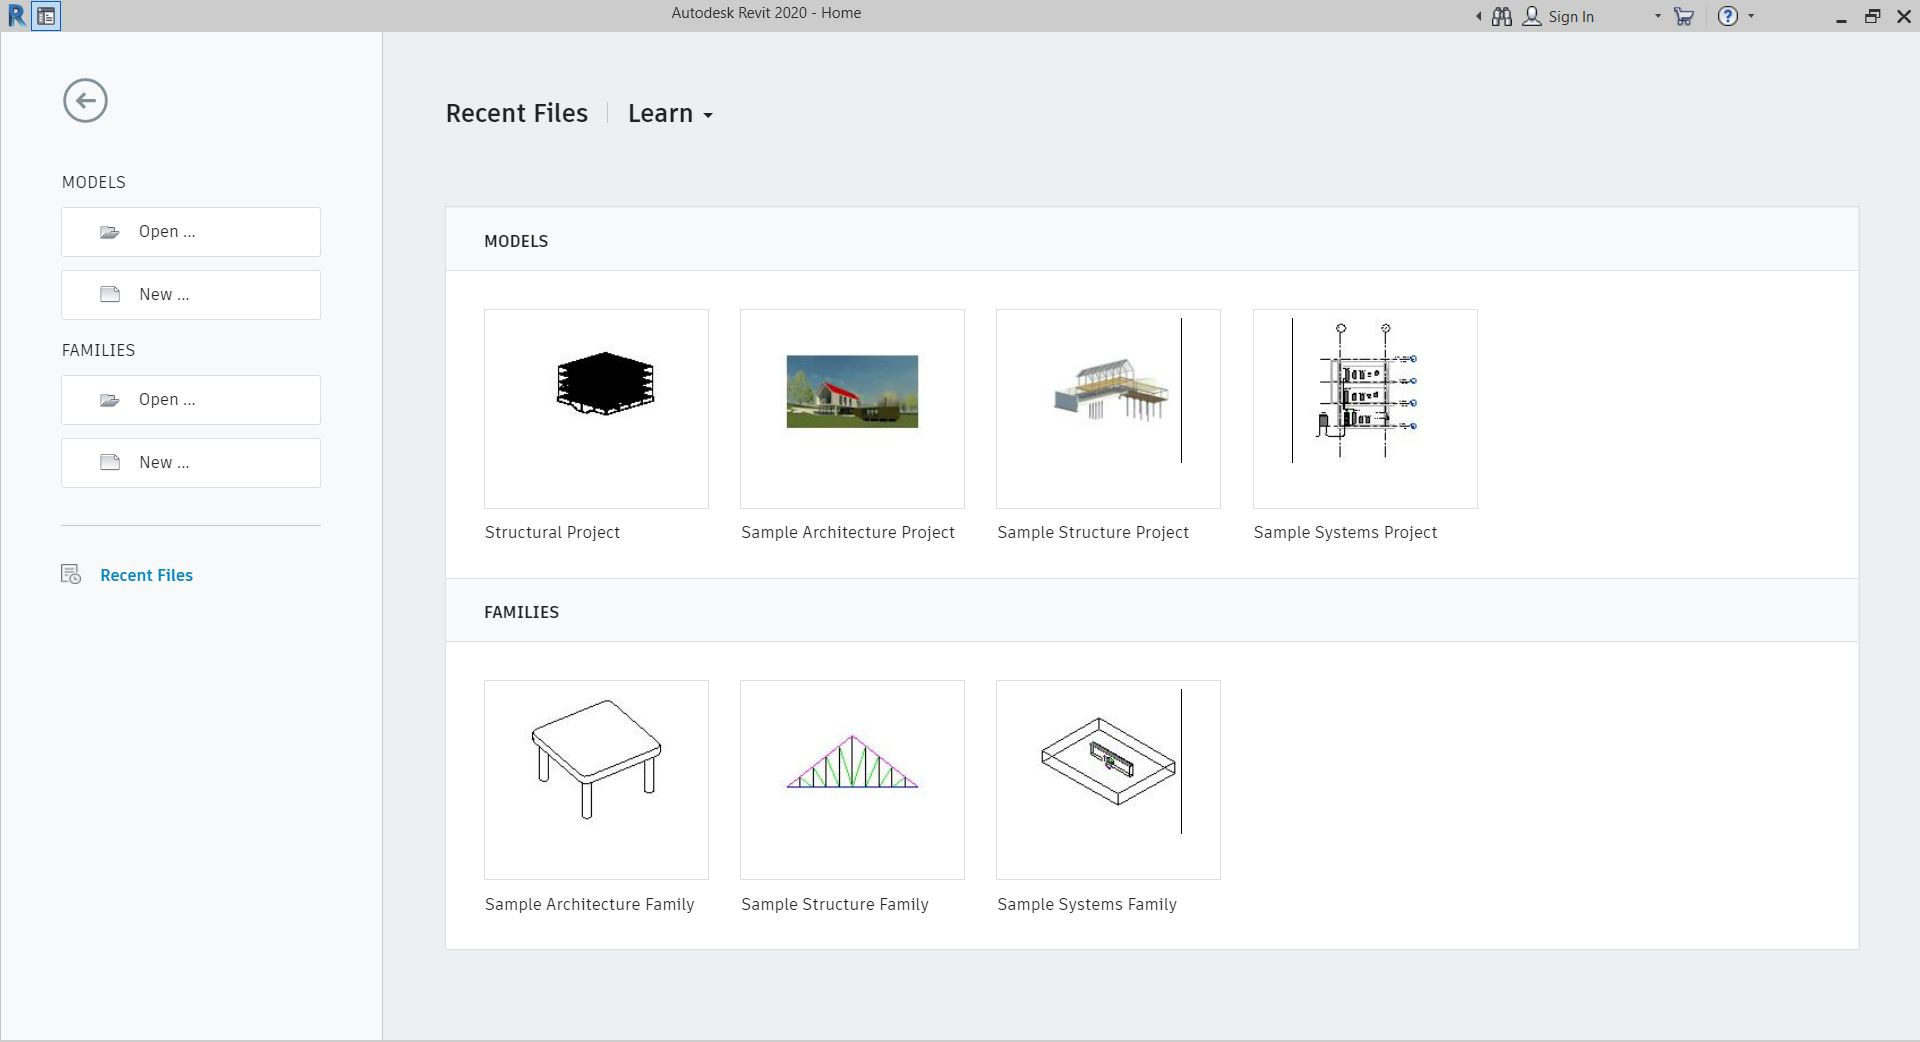 Direct - Autodesk Revit 2020 | Team OS : Your Only